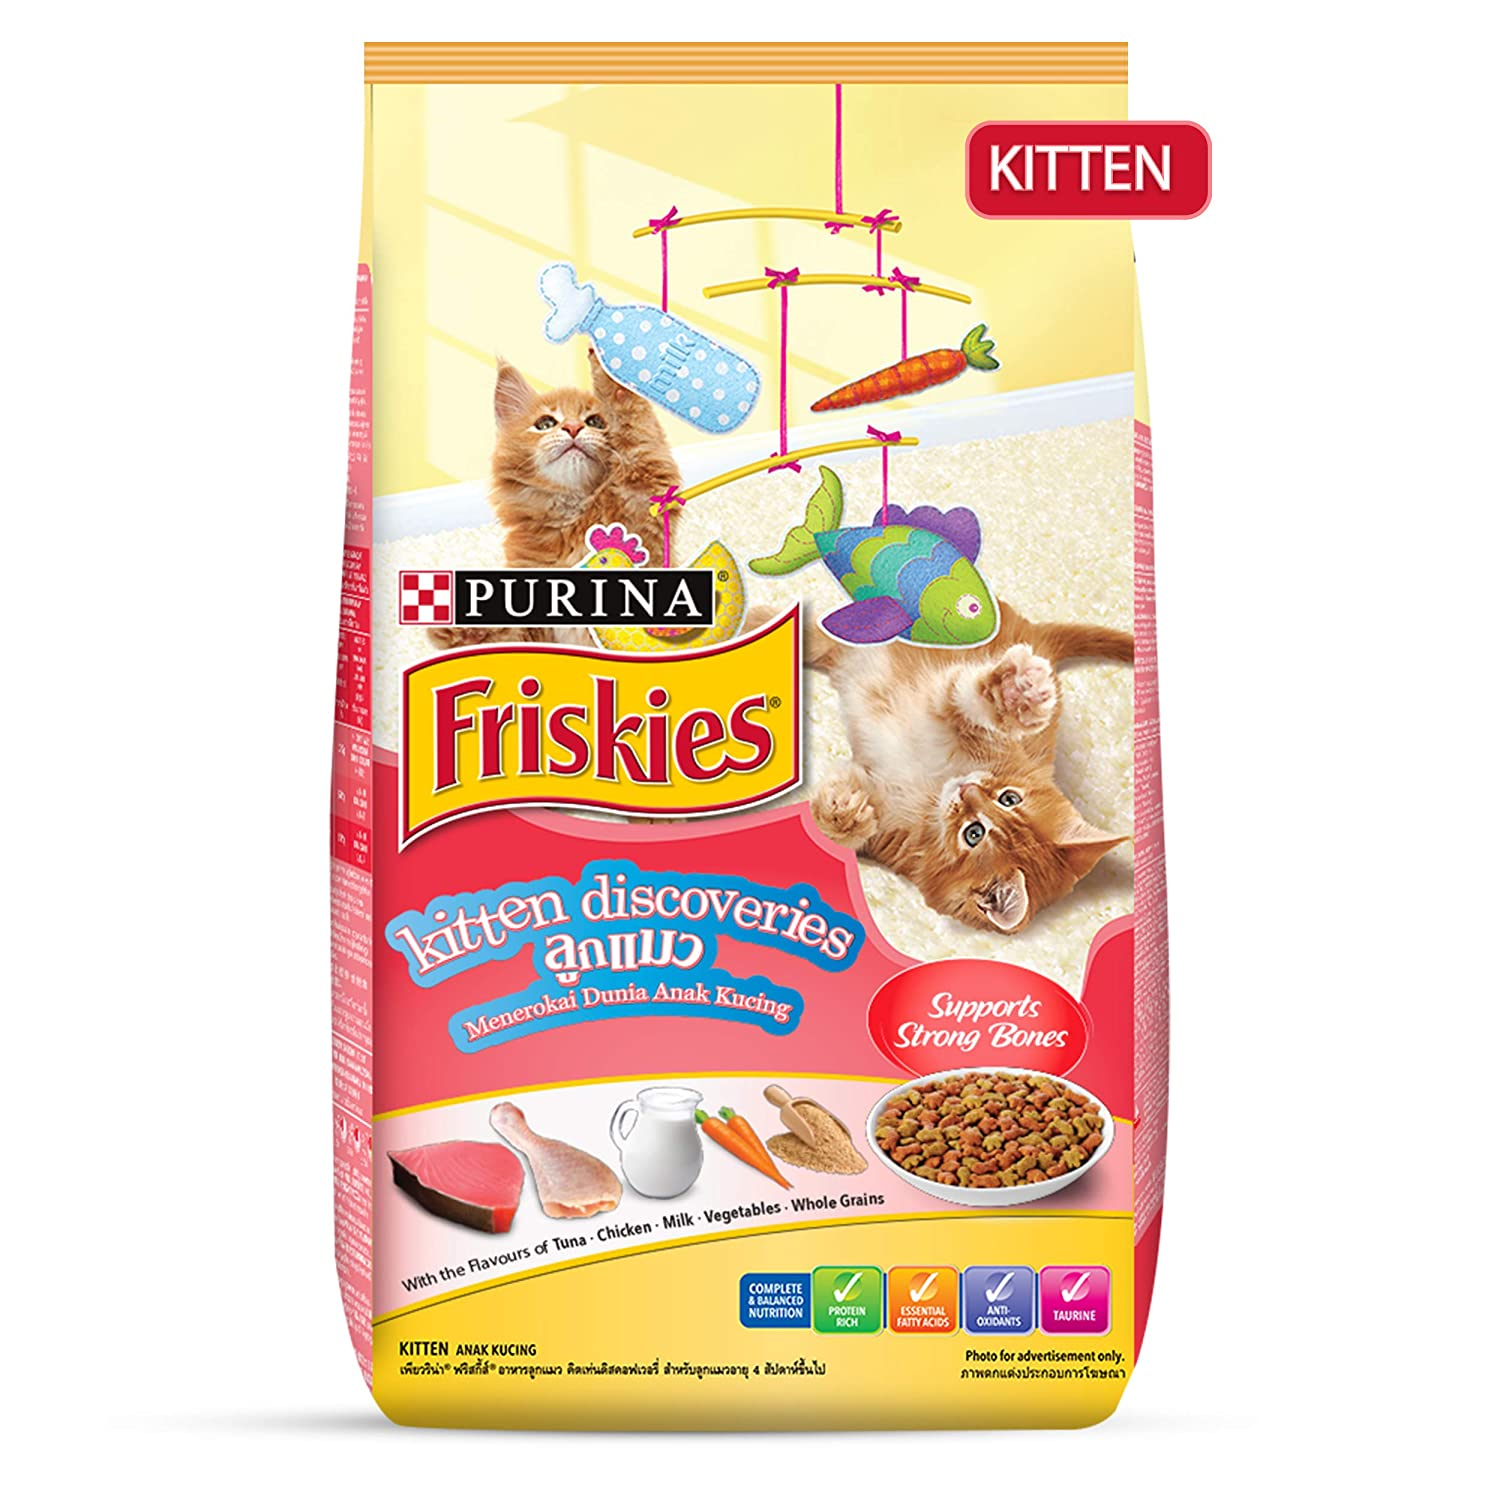 Friskies Kitten Discoveries - Pet Food - Pet Store - Pet supplies